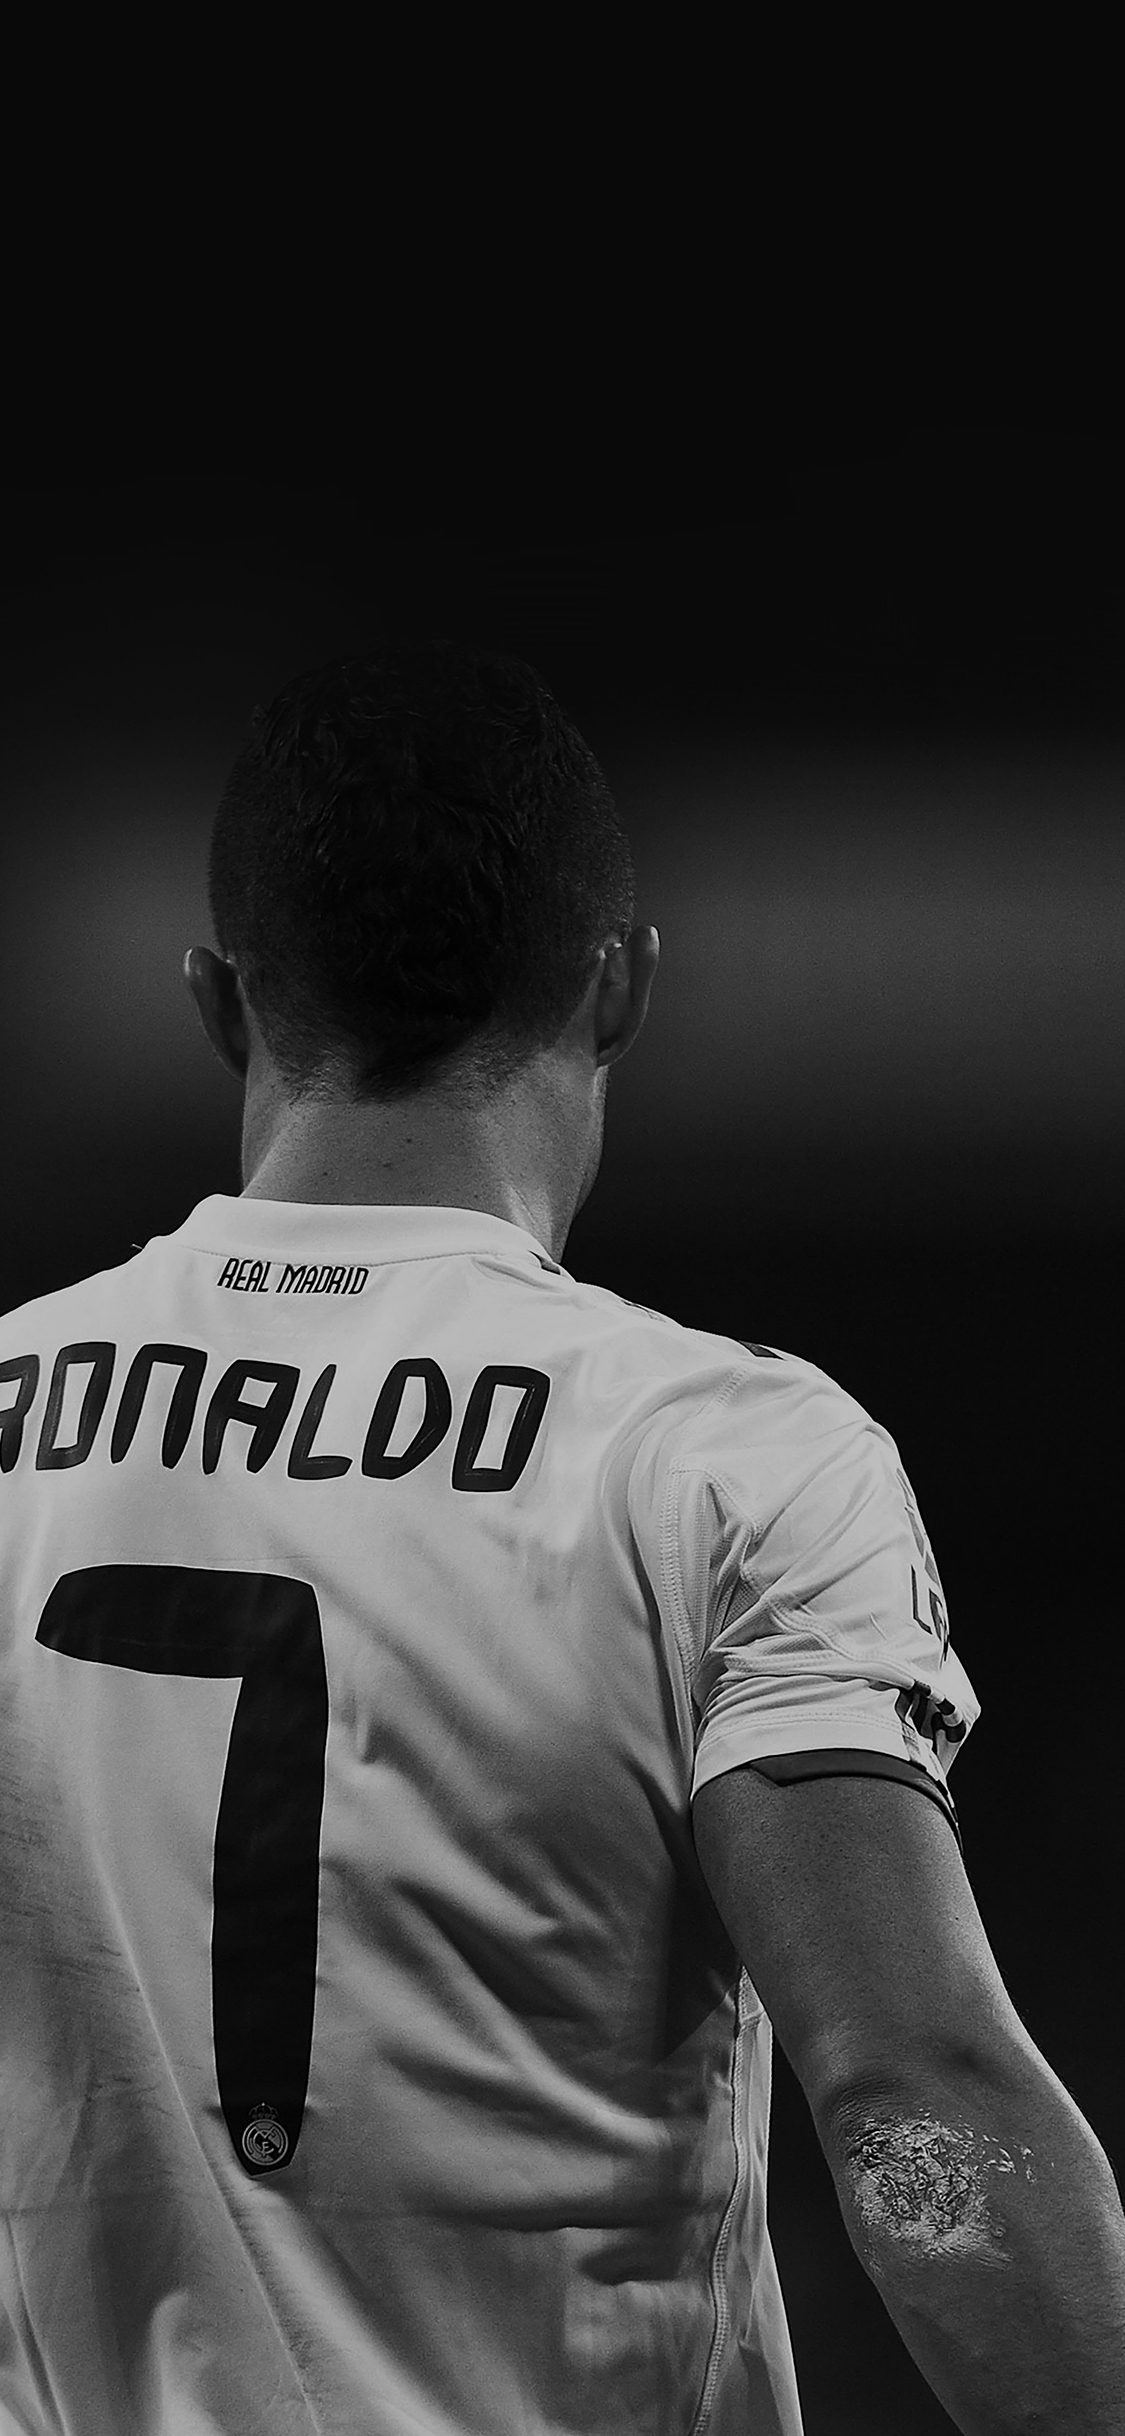 cristiano ronaldo essay Cristiano ronaldo resources for kids - learn a little about this amazing footballer, captain of portugal and forward at real madrid, and enjoy our colouring page, poster, worksheet and other fun printables.